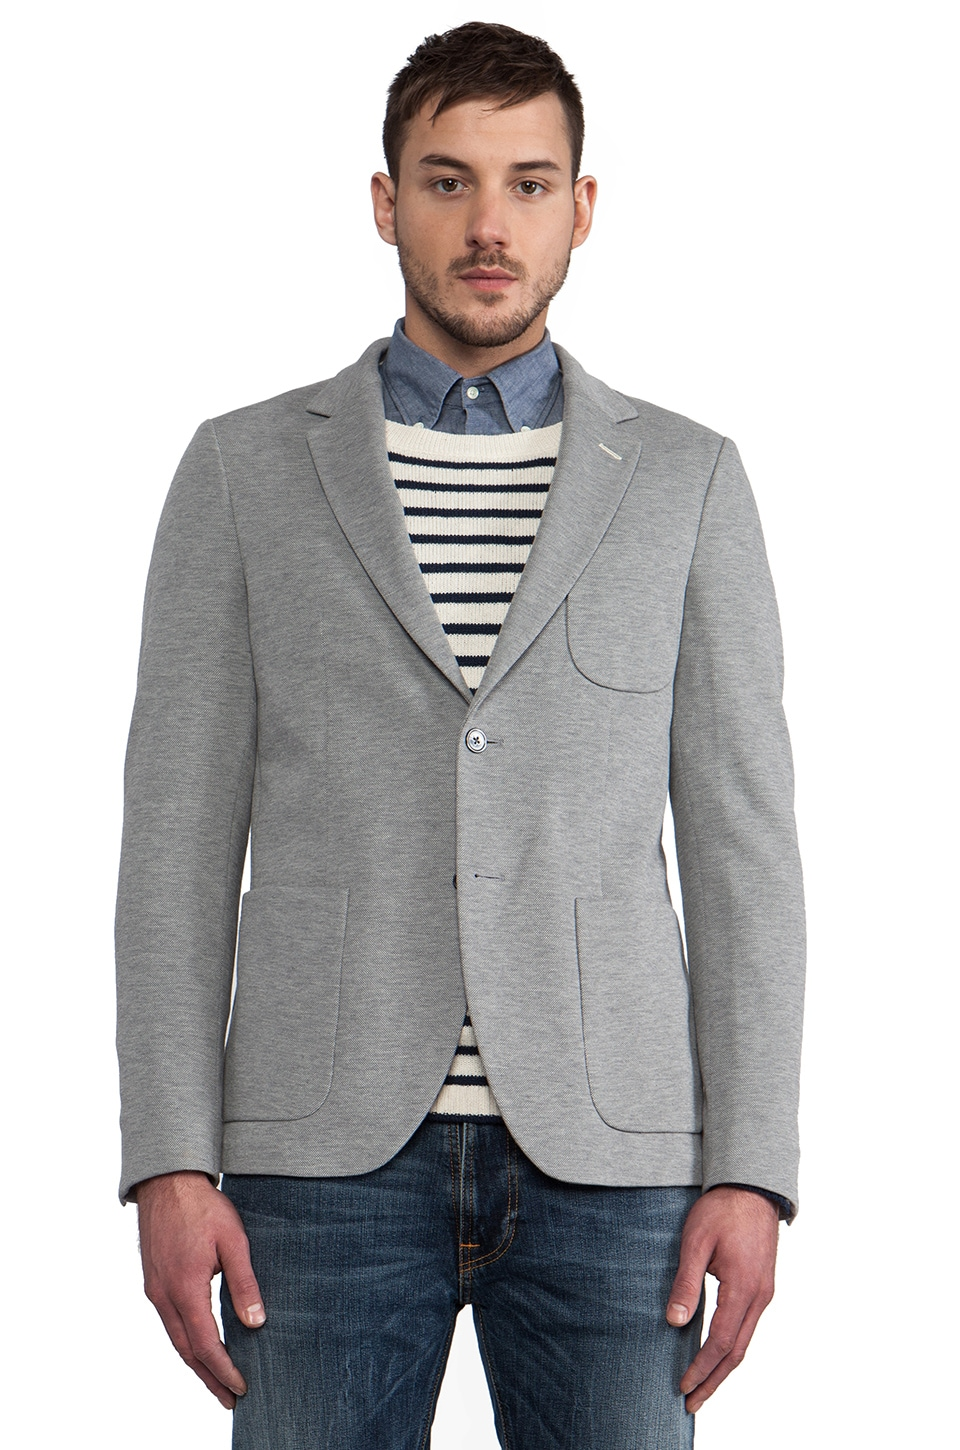 GANT Rugger Unconstructed Blazer in Grey